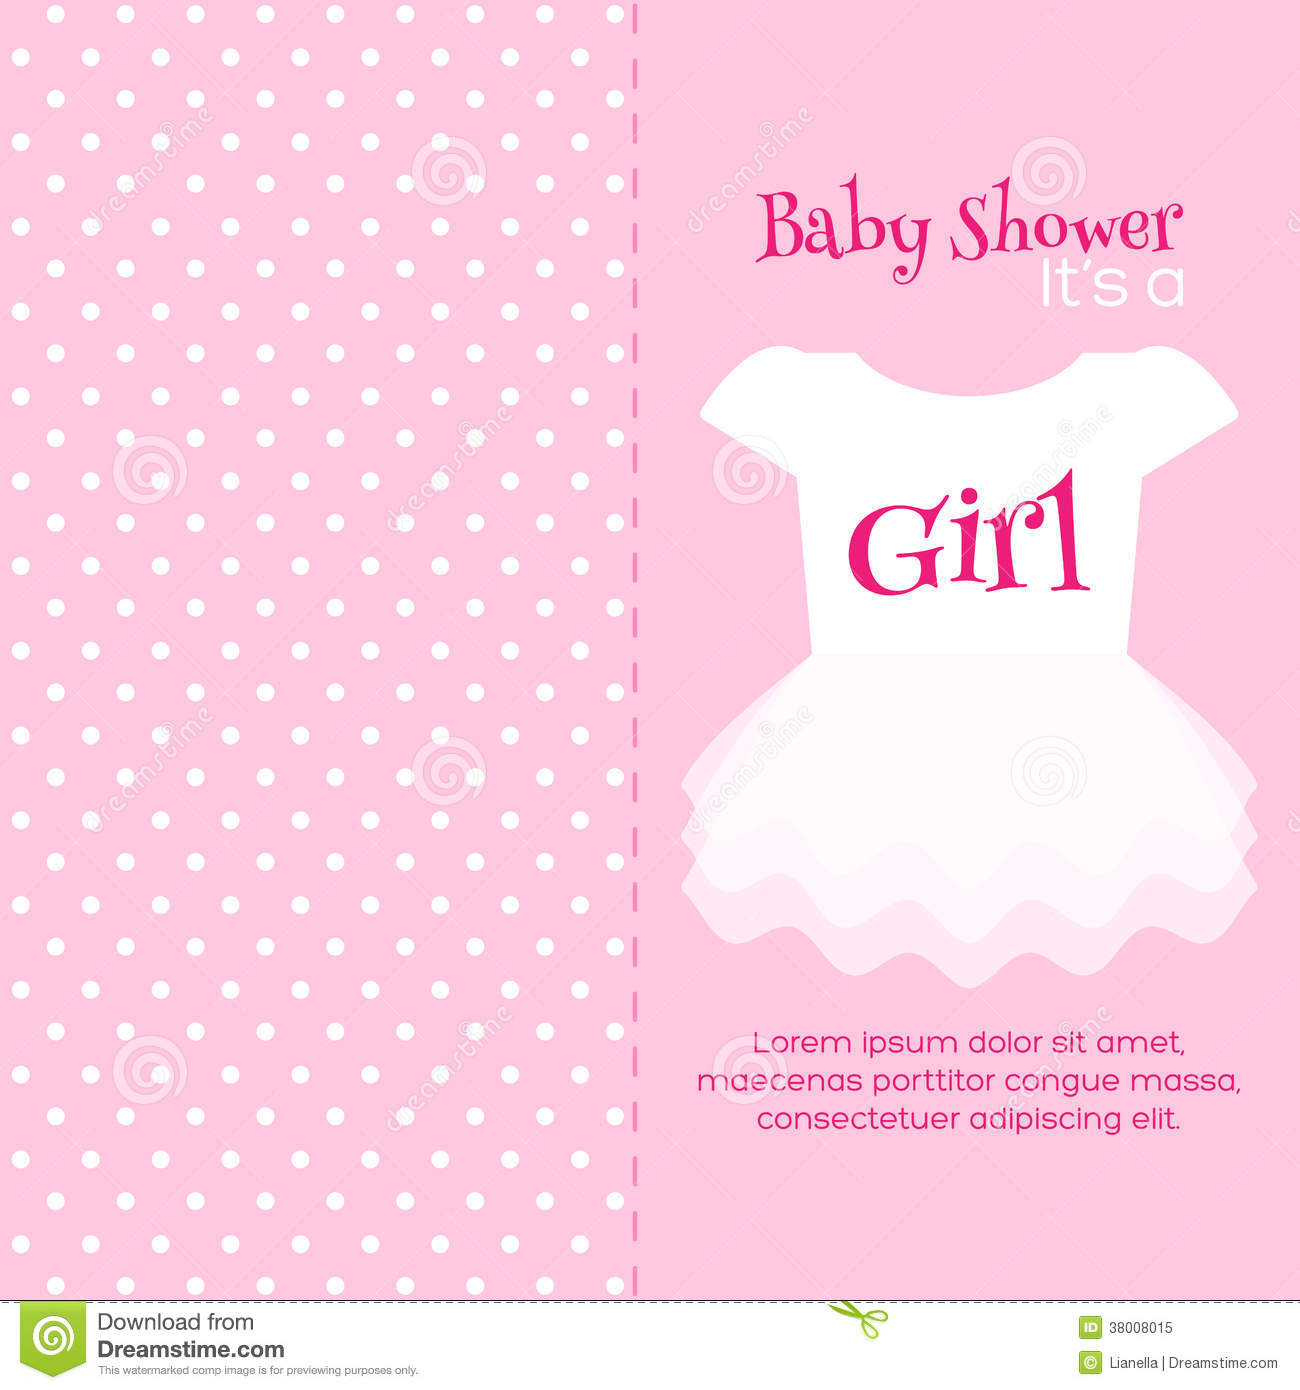 Baby shower invitations templates free download fresh baby shower.